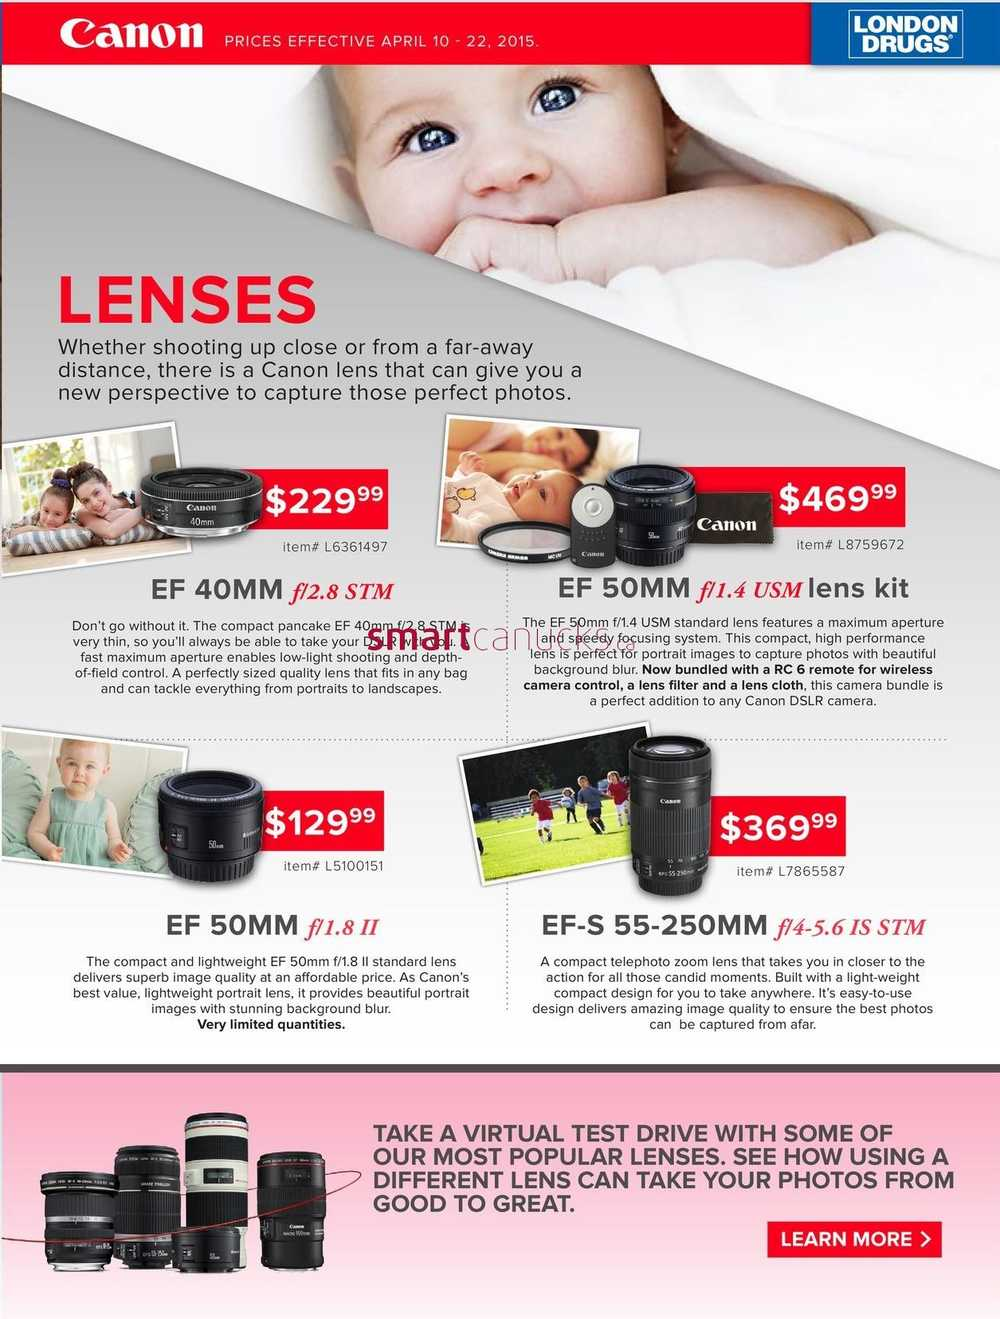 Canon estore coupon canada : Holiday gas station free coffee